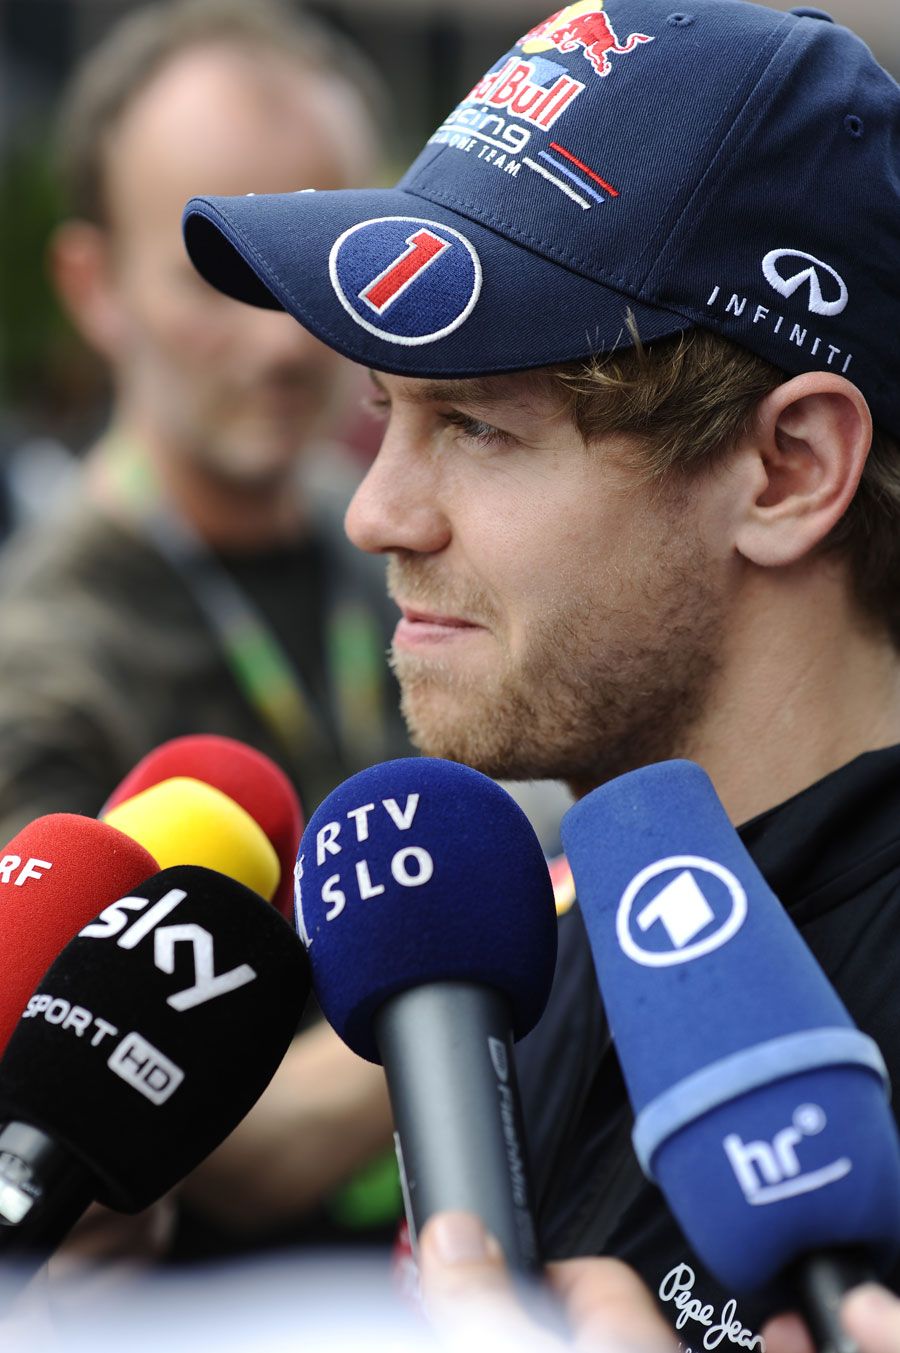 Sebastian Vettel speaks to the media in the paddock